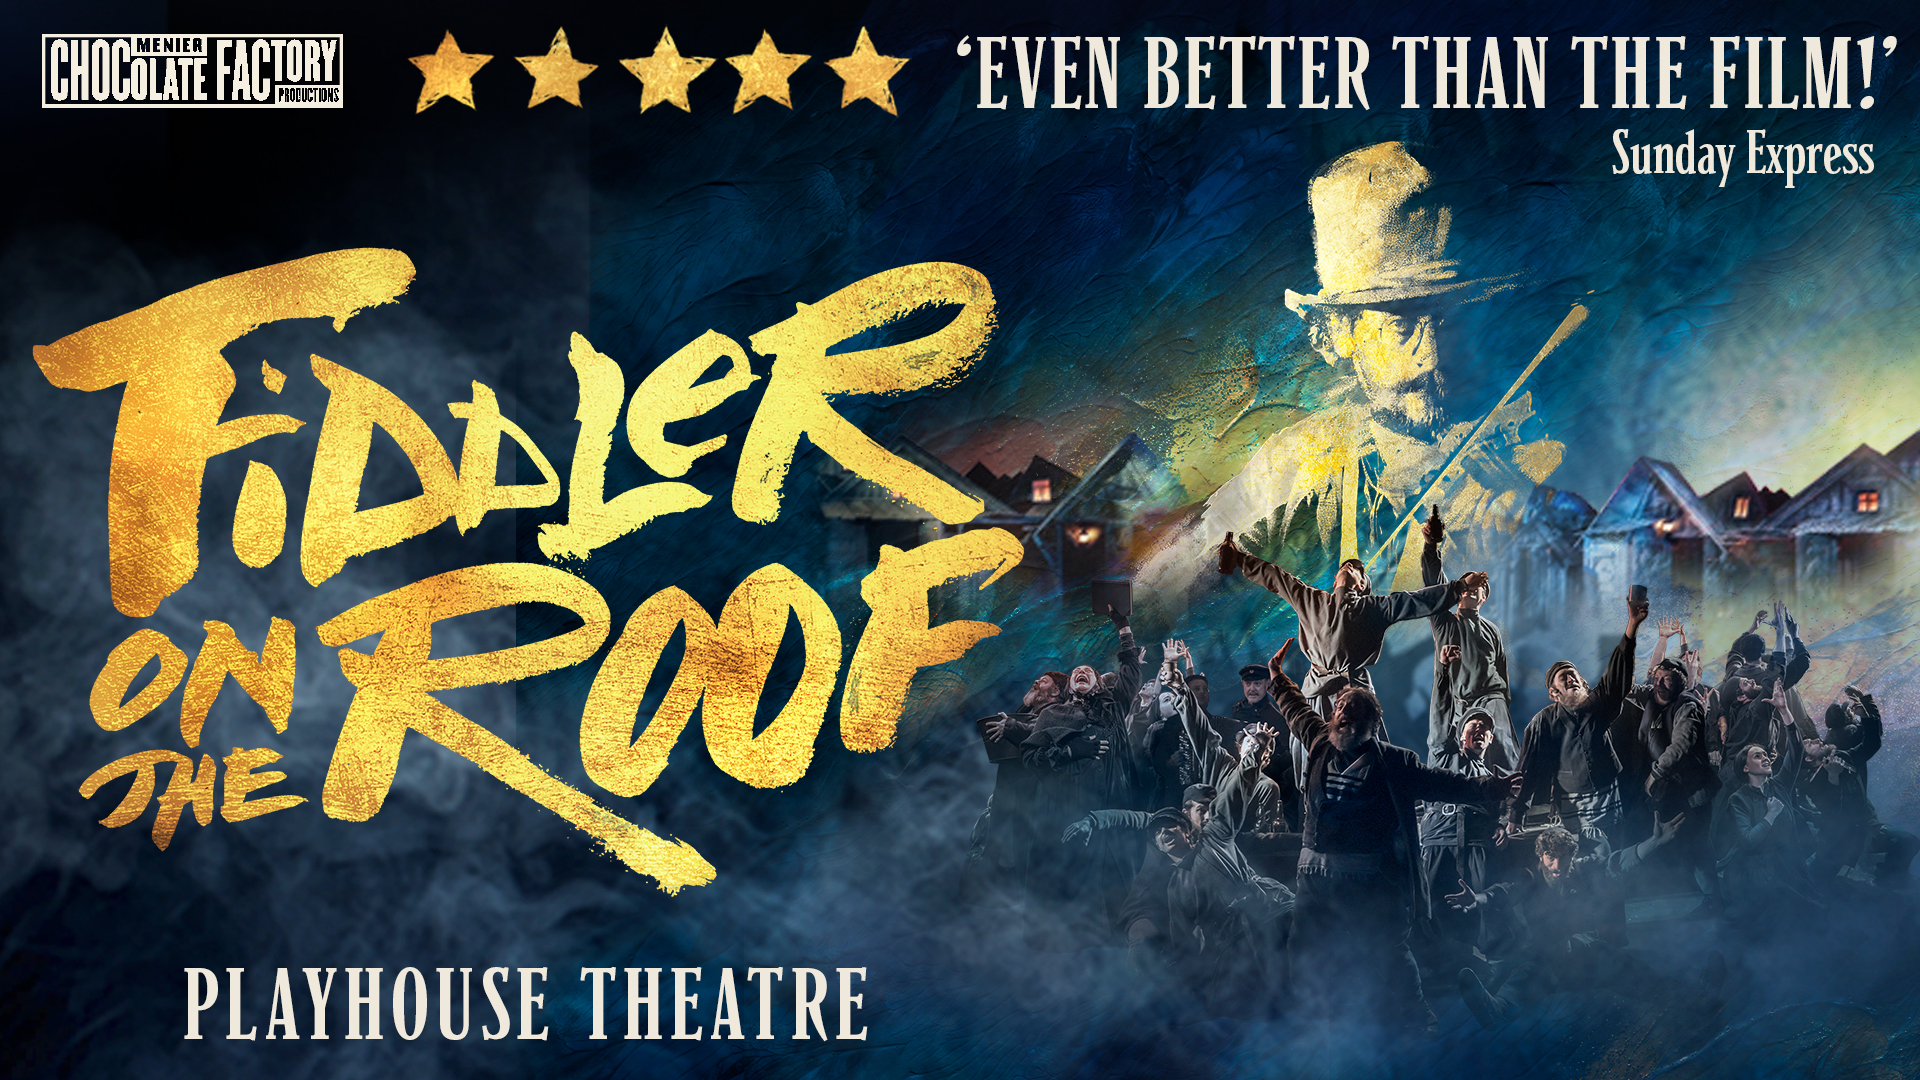 Title artwork for Fiddler on the Roof the musical with 5 star reviews